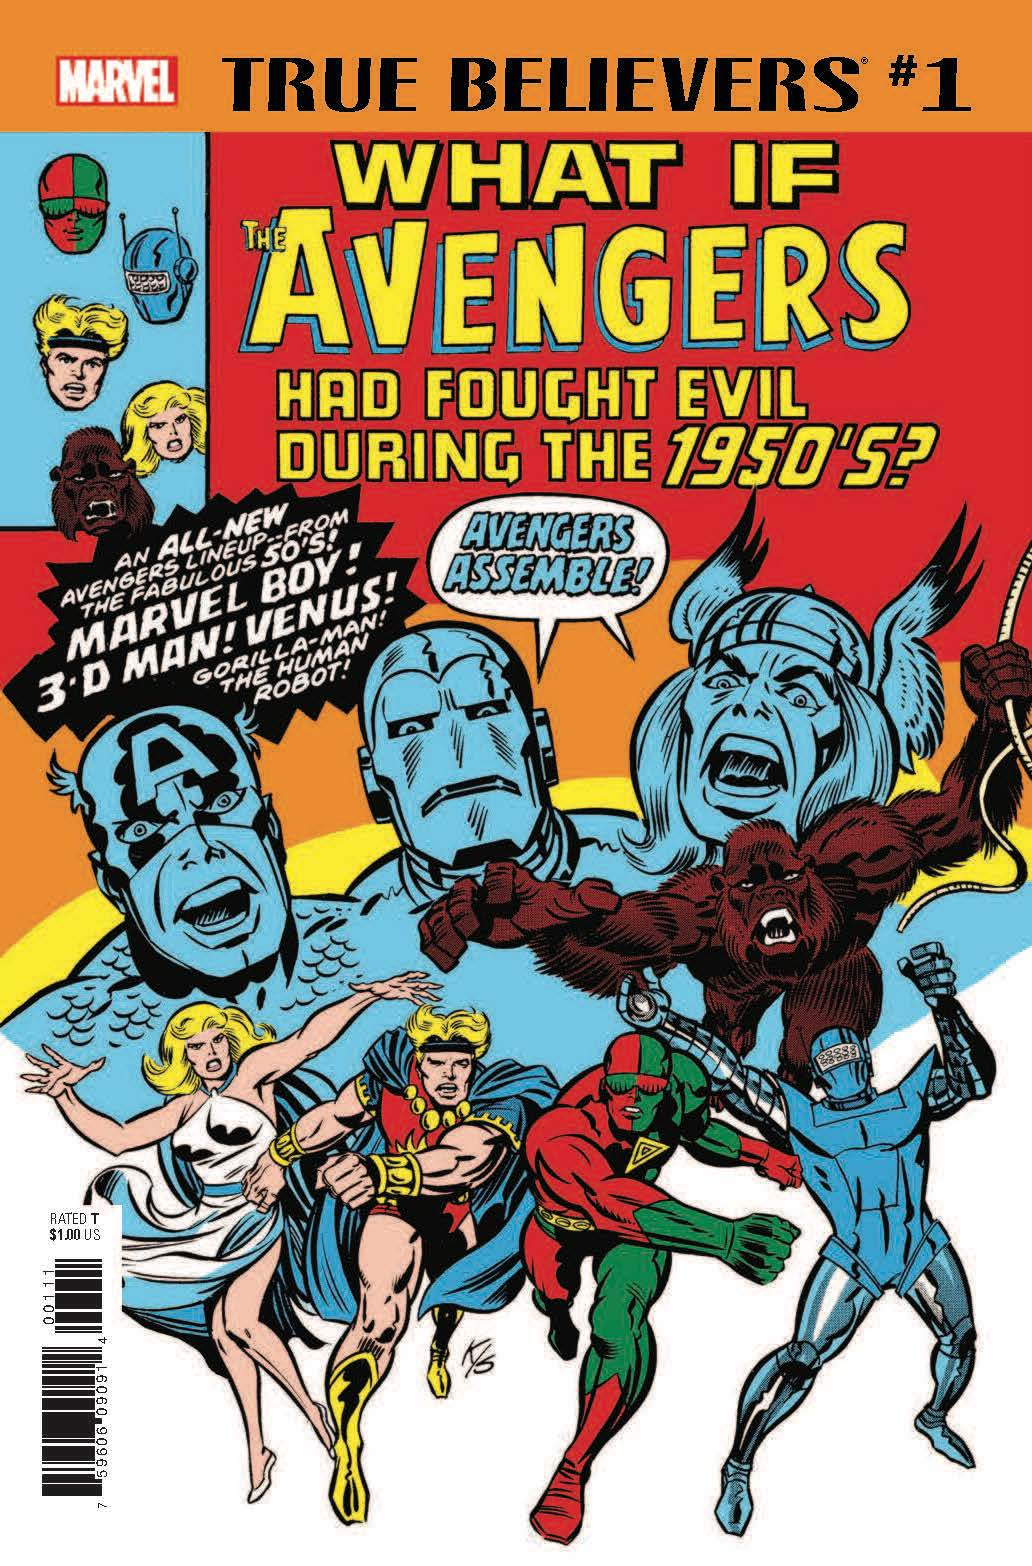 True Believers: What If the Avengers Had Fought Evil During the 1950s? Vol 1